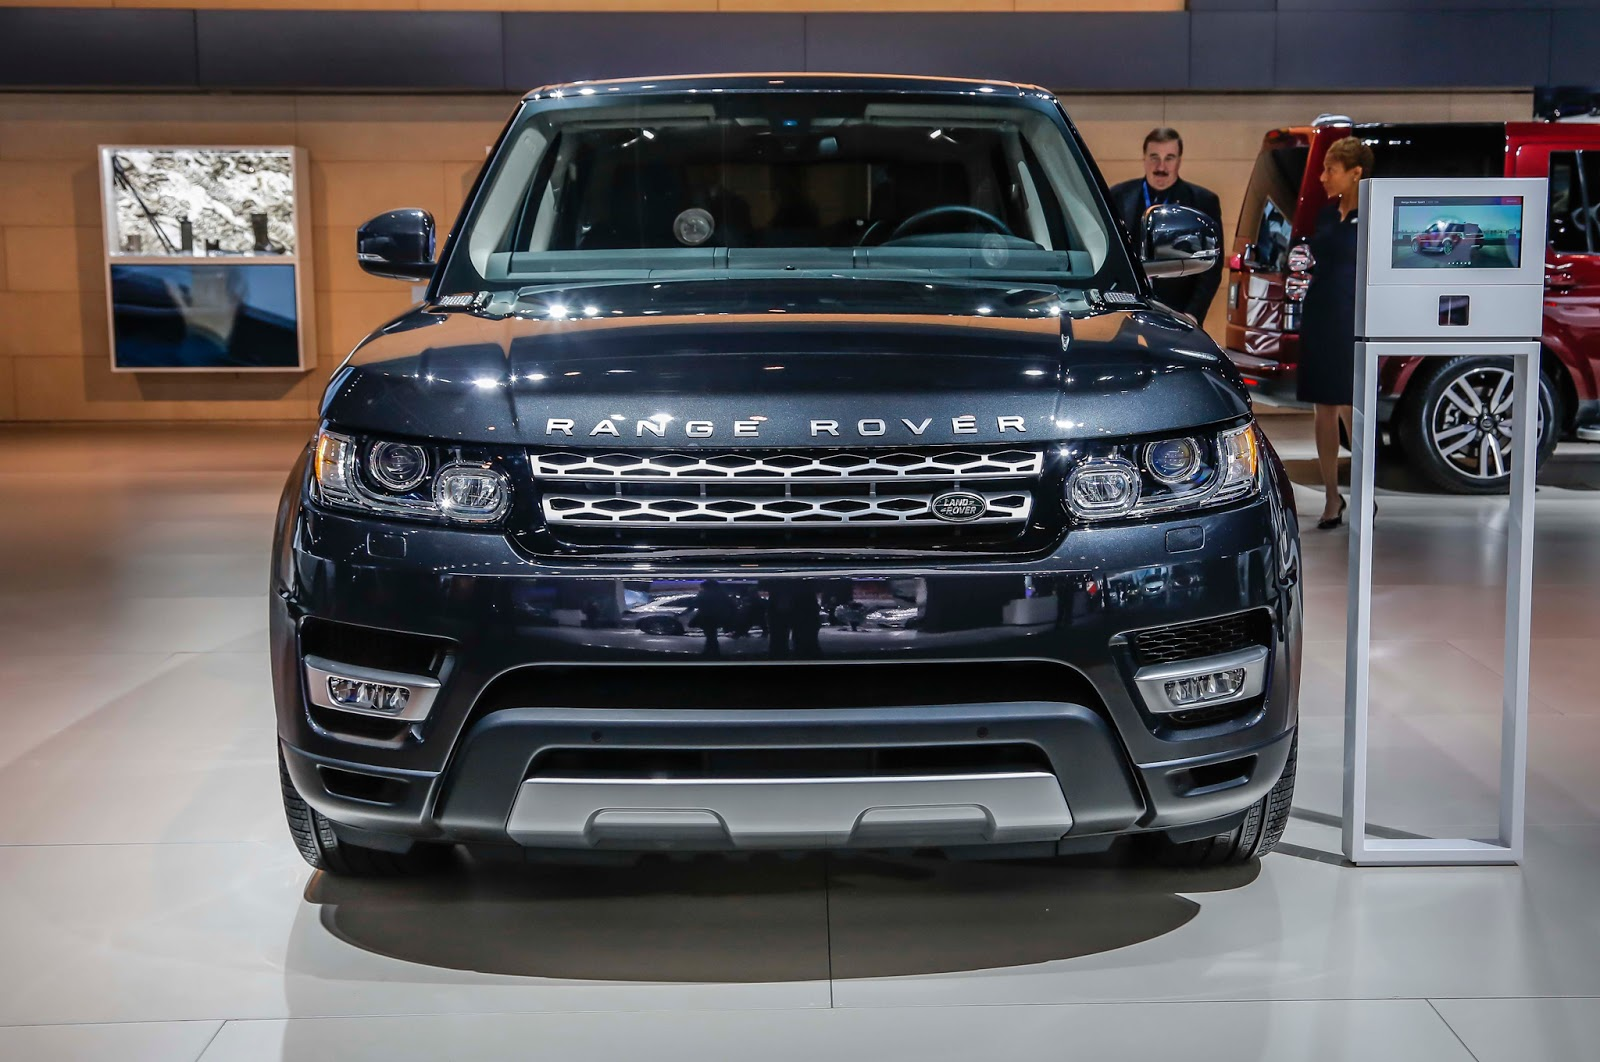 spied guard profile express brush baby rover discovery landrover auto land bady disco freelander